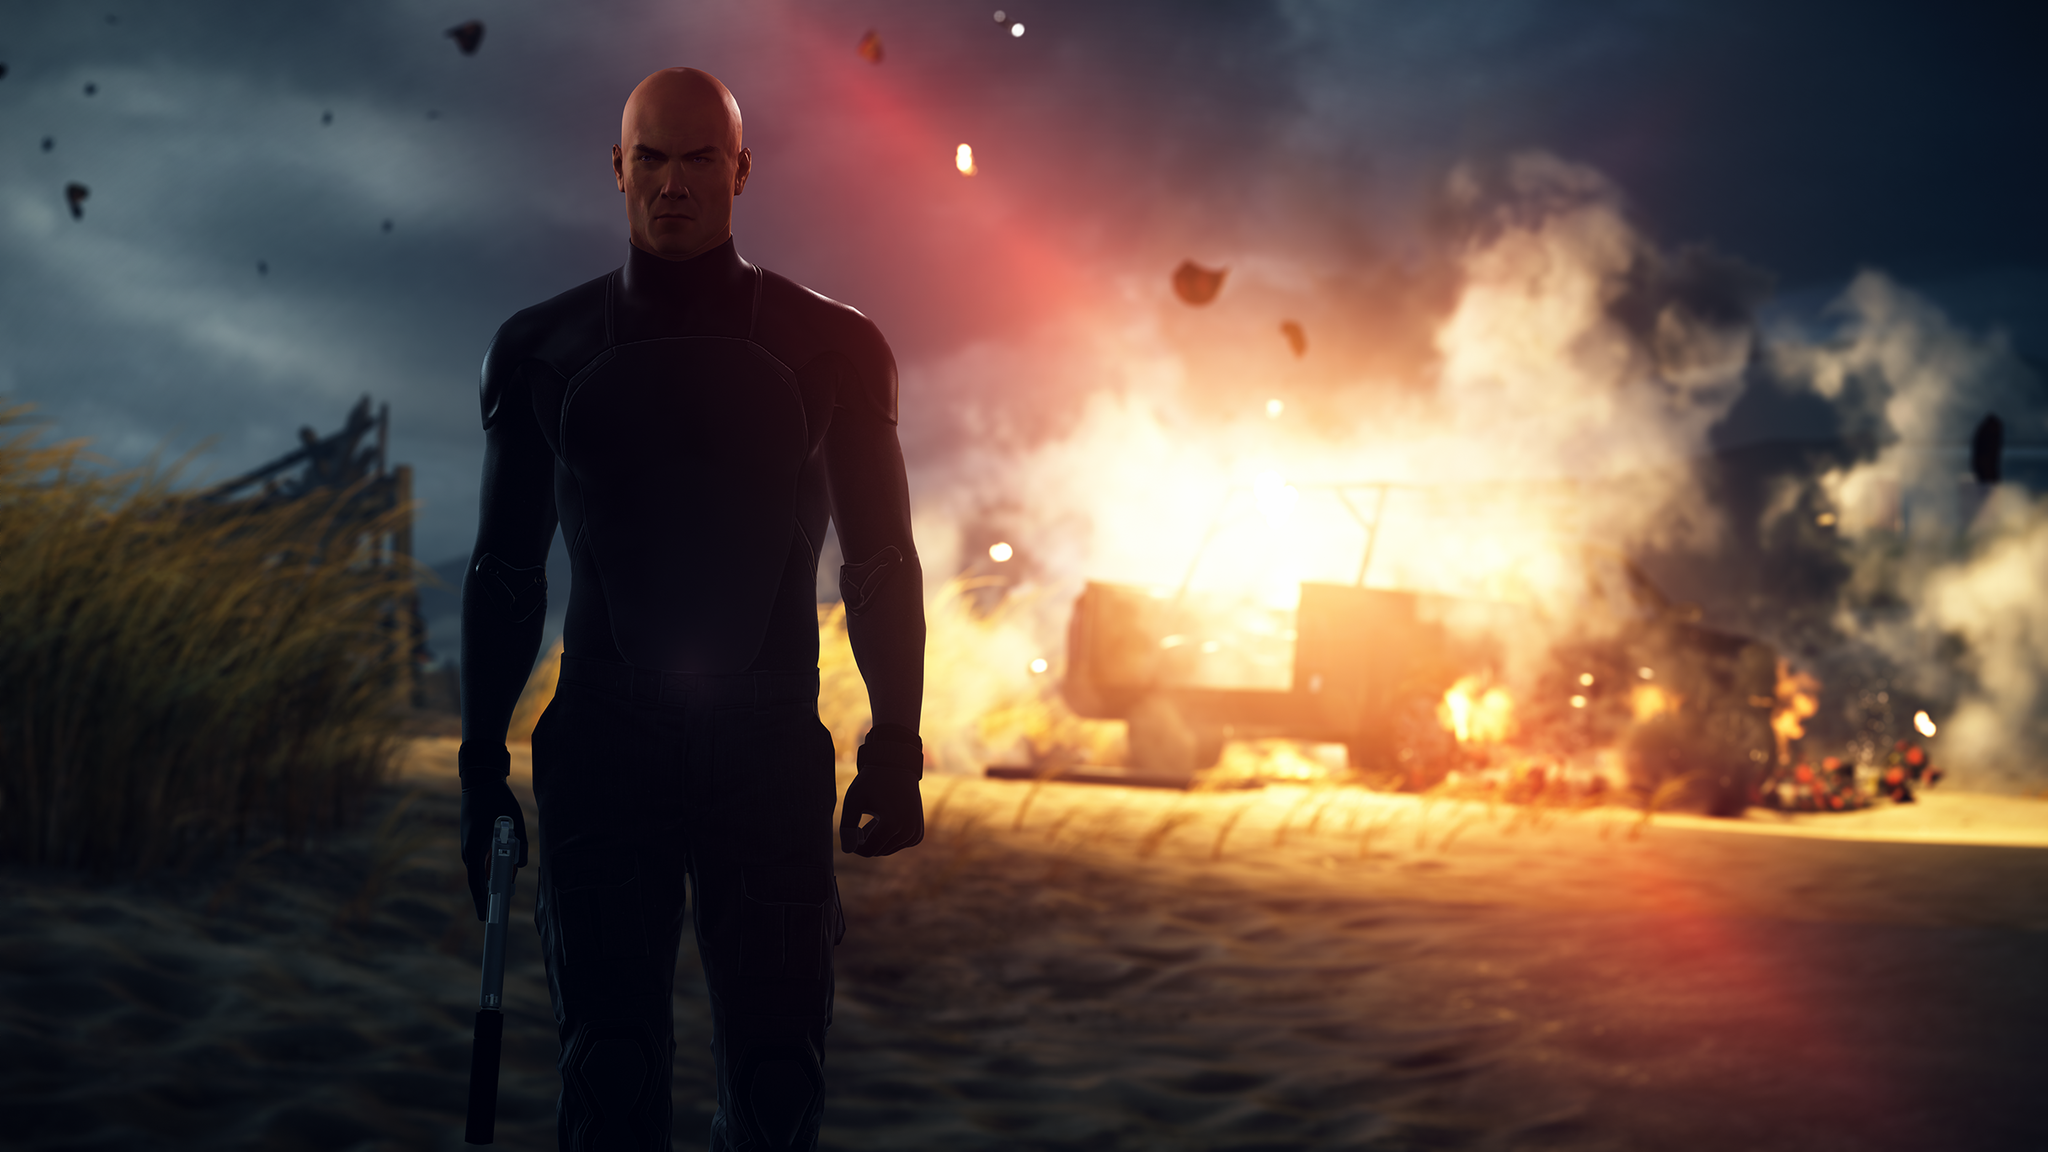 hitman 2 review ps4 xbox pc header